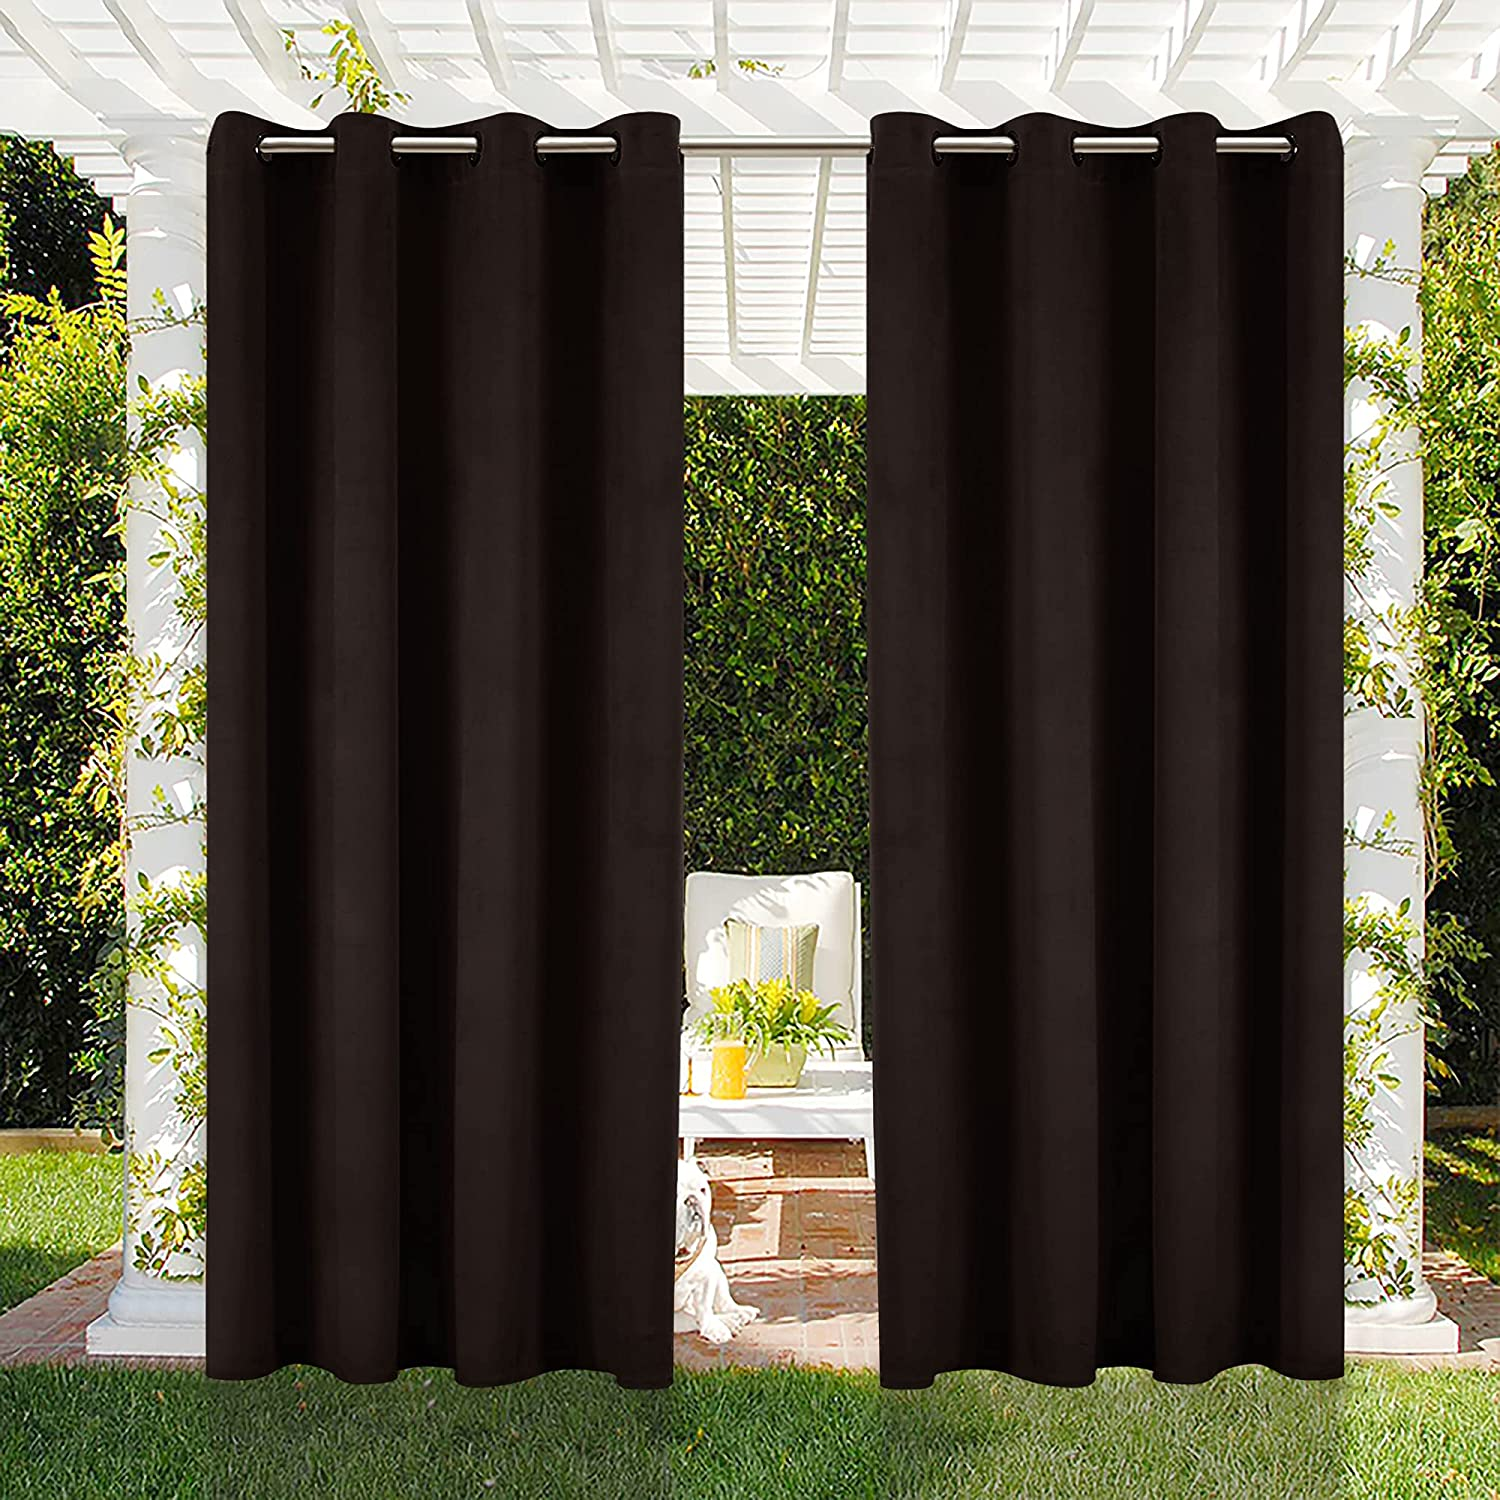 Manufacturer regenerated Boston Mall product CHHKON Outdoor Curtains for Waterproof Velvet Patio Ind